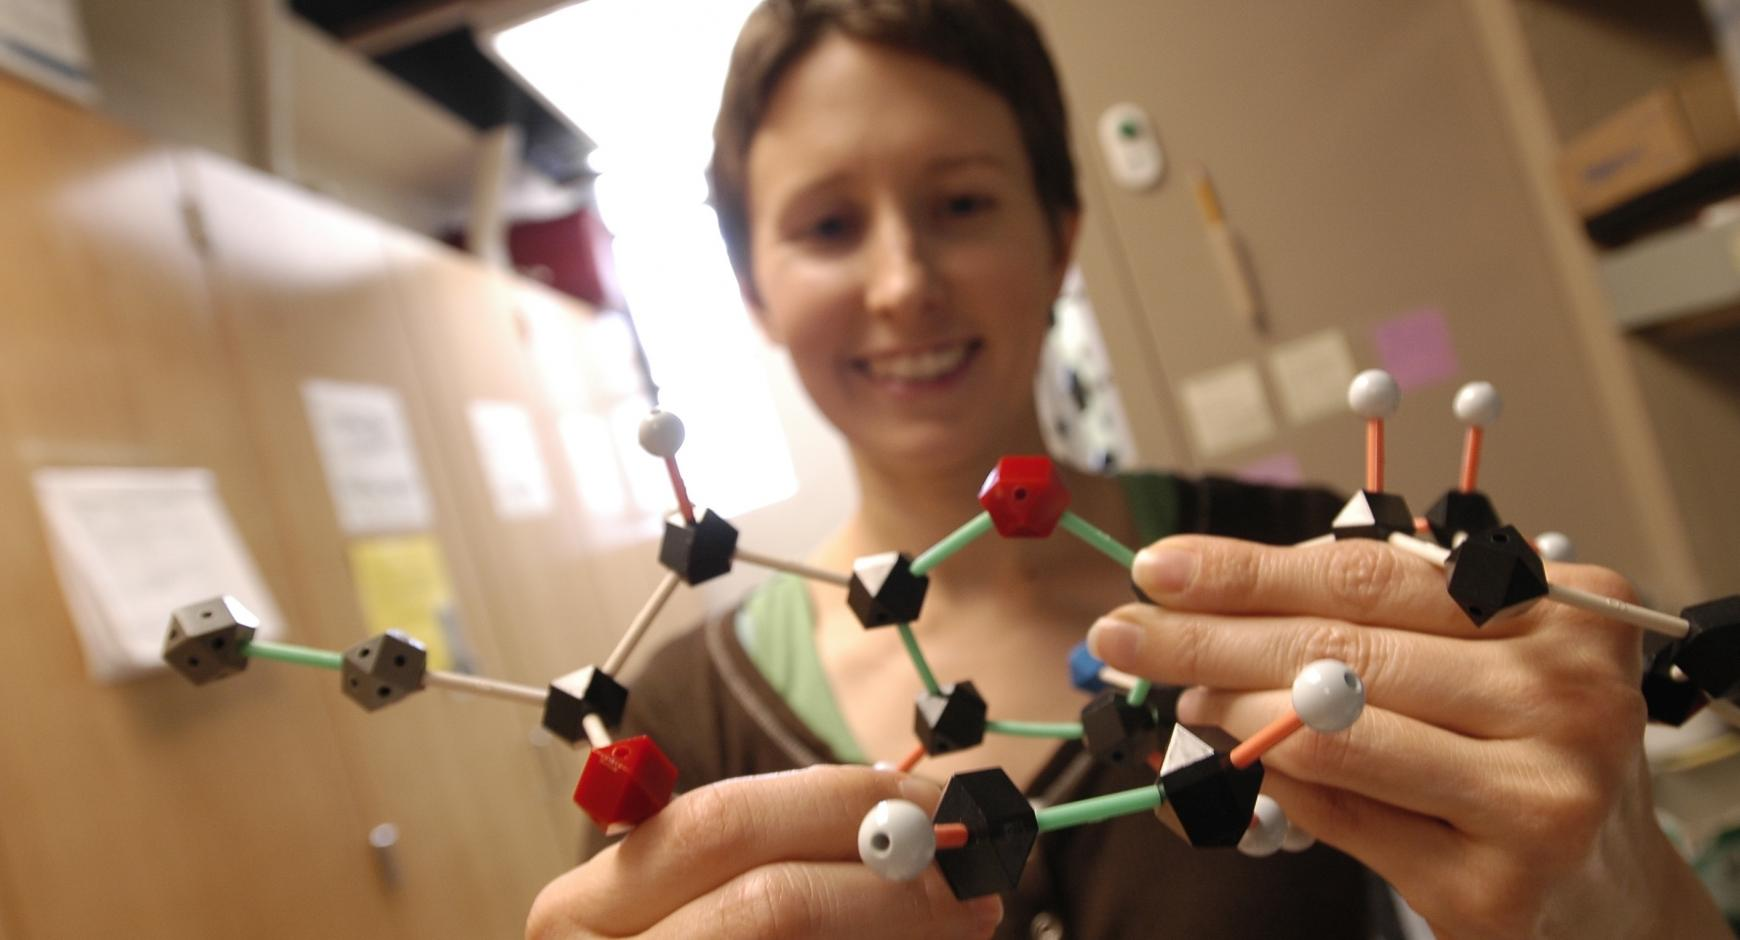 Student in lab holding a chemistry model.